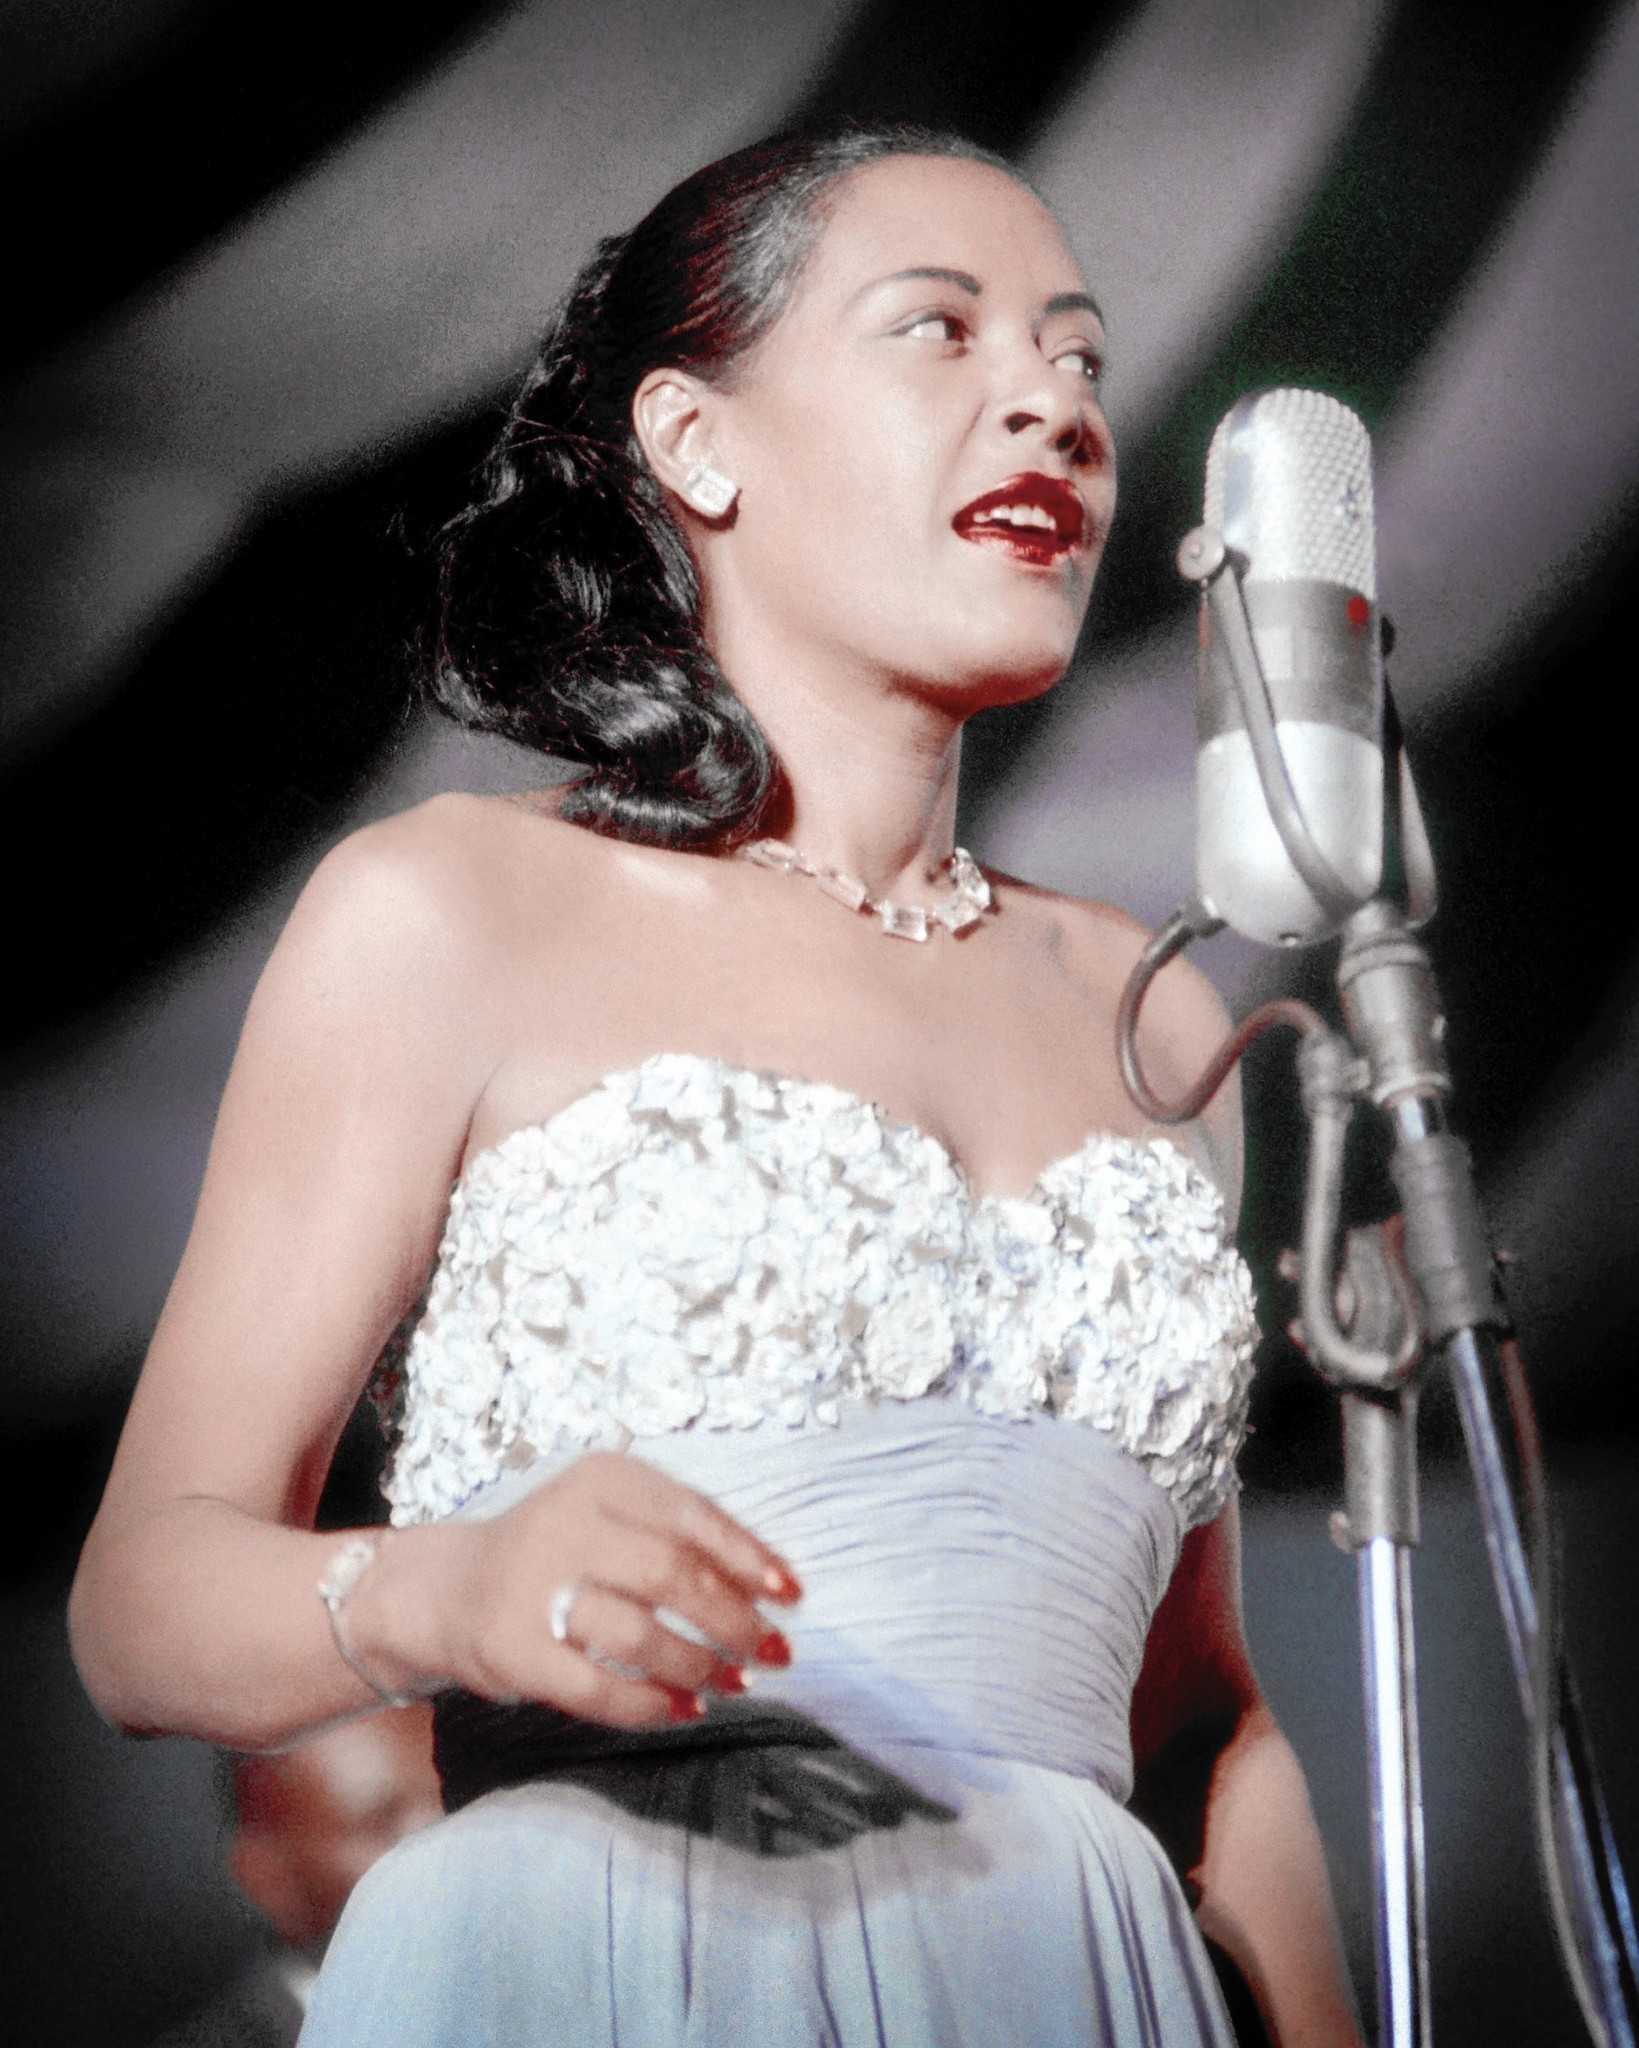 billie holiday - photo #21